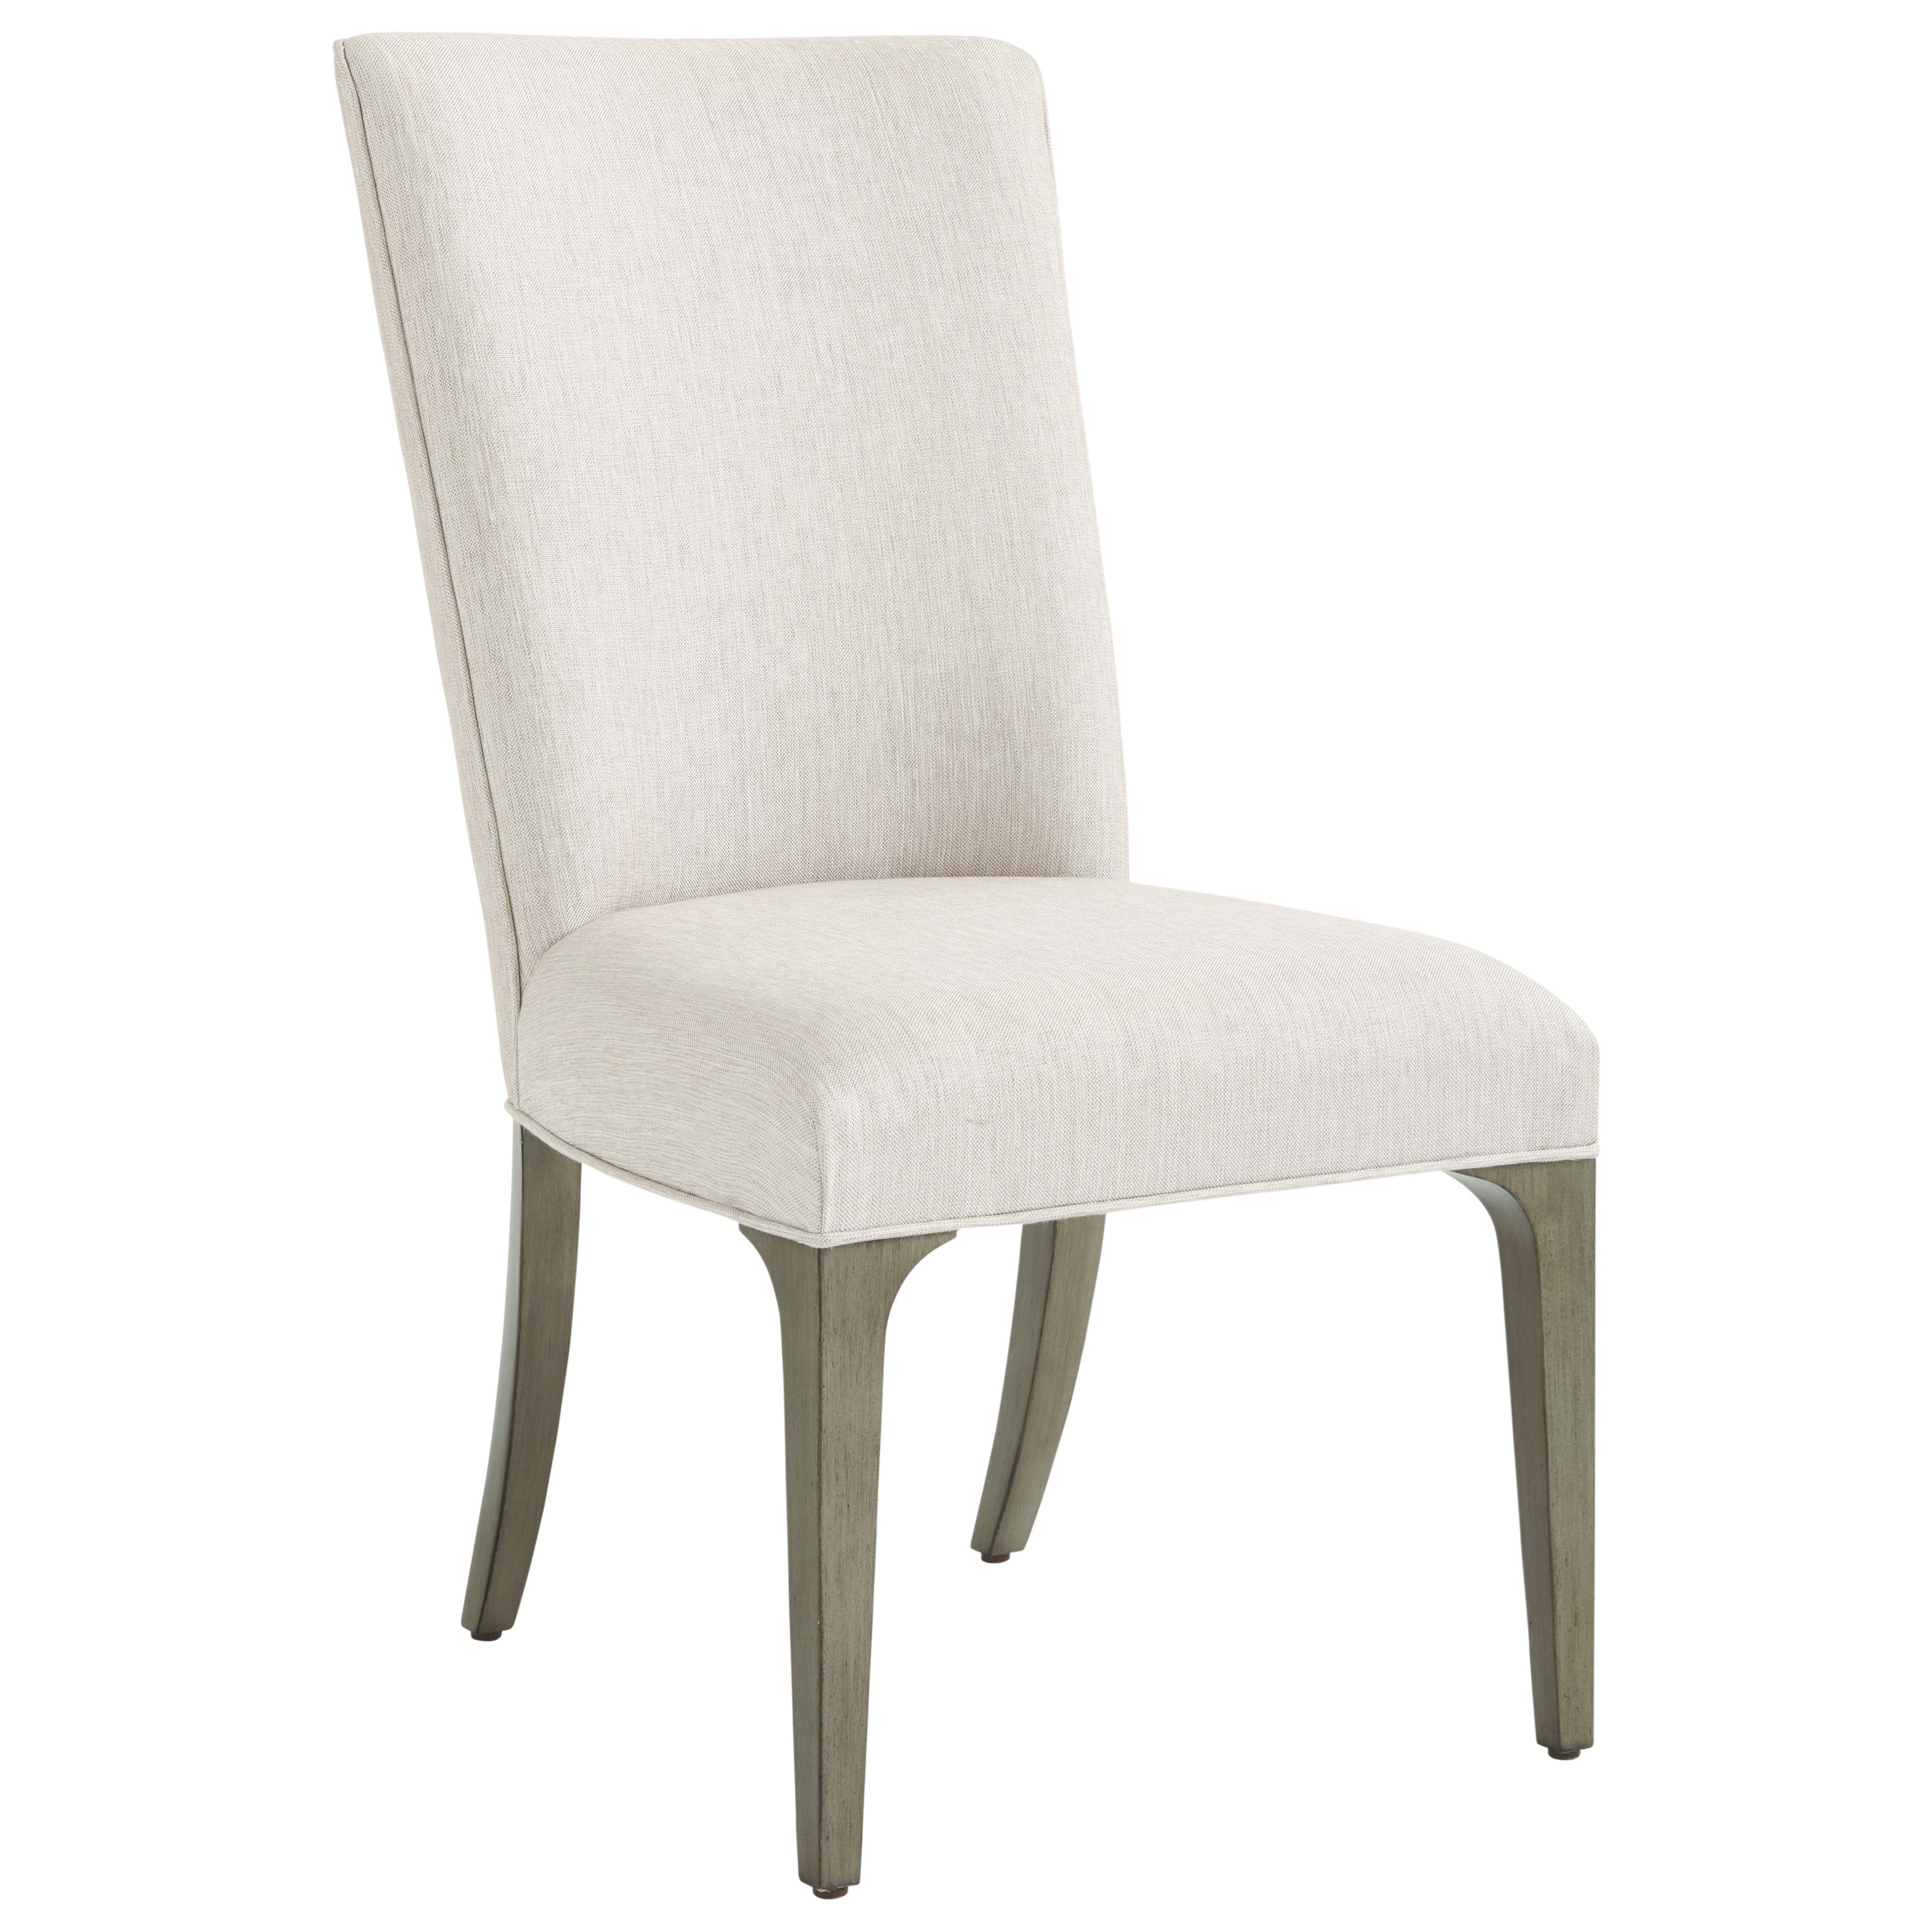 Ariana Bellamy Upholstered Side Chair (married fab) by Lexington at Johnny Janosik